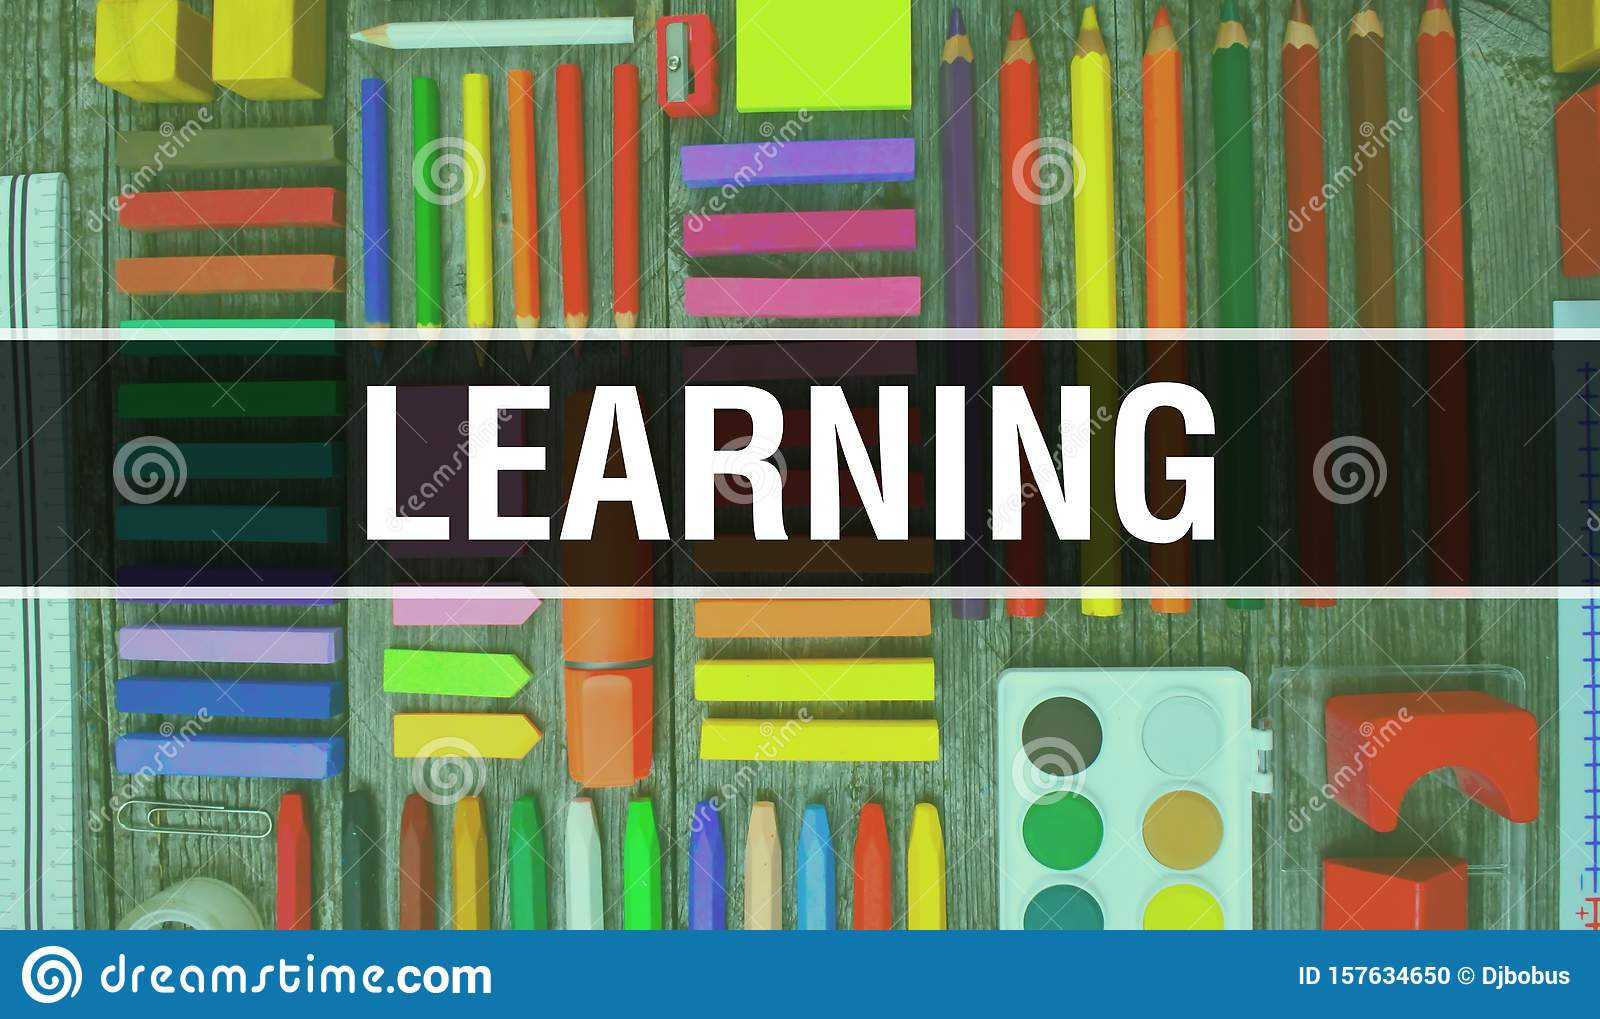 Learning Text With Back To School Wallpaper Learning And School Education Background Concept School Stationery And Learning Text Stock Photo Image Of Object Concept 157634650